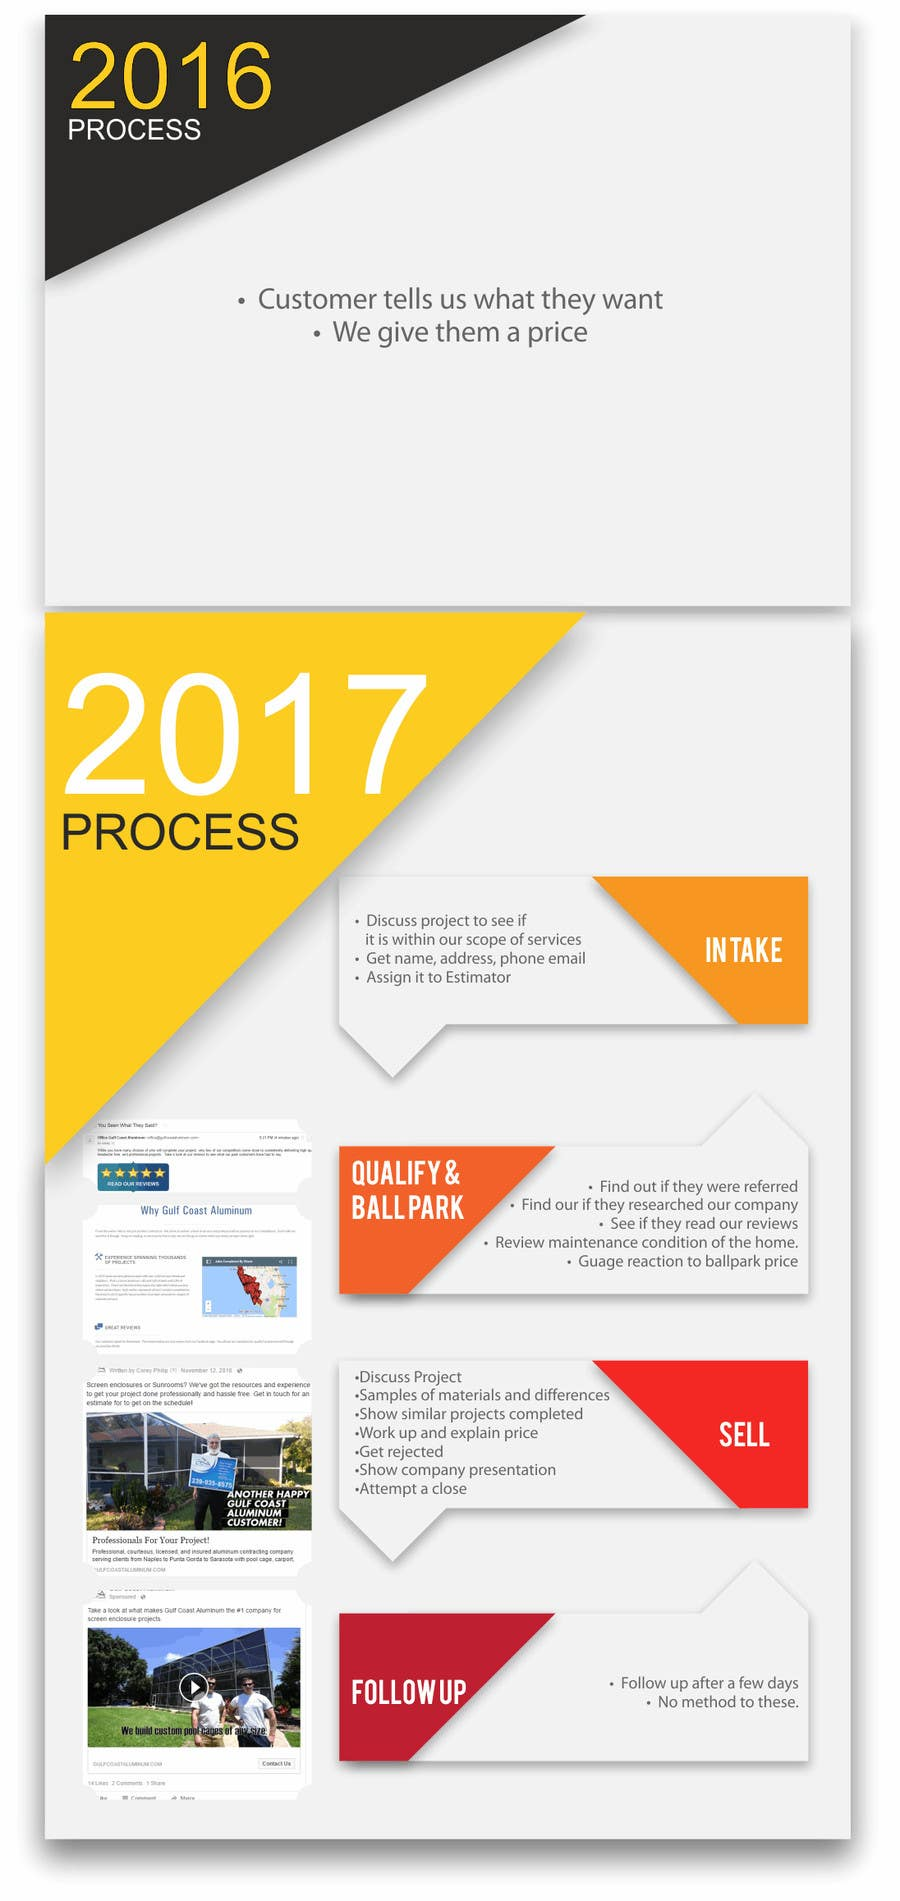 Contest Entry #5 for Design: Sales Process Graphic